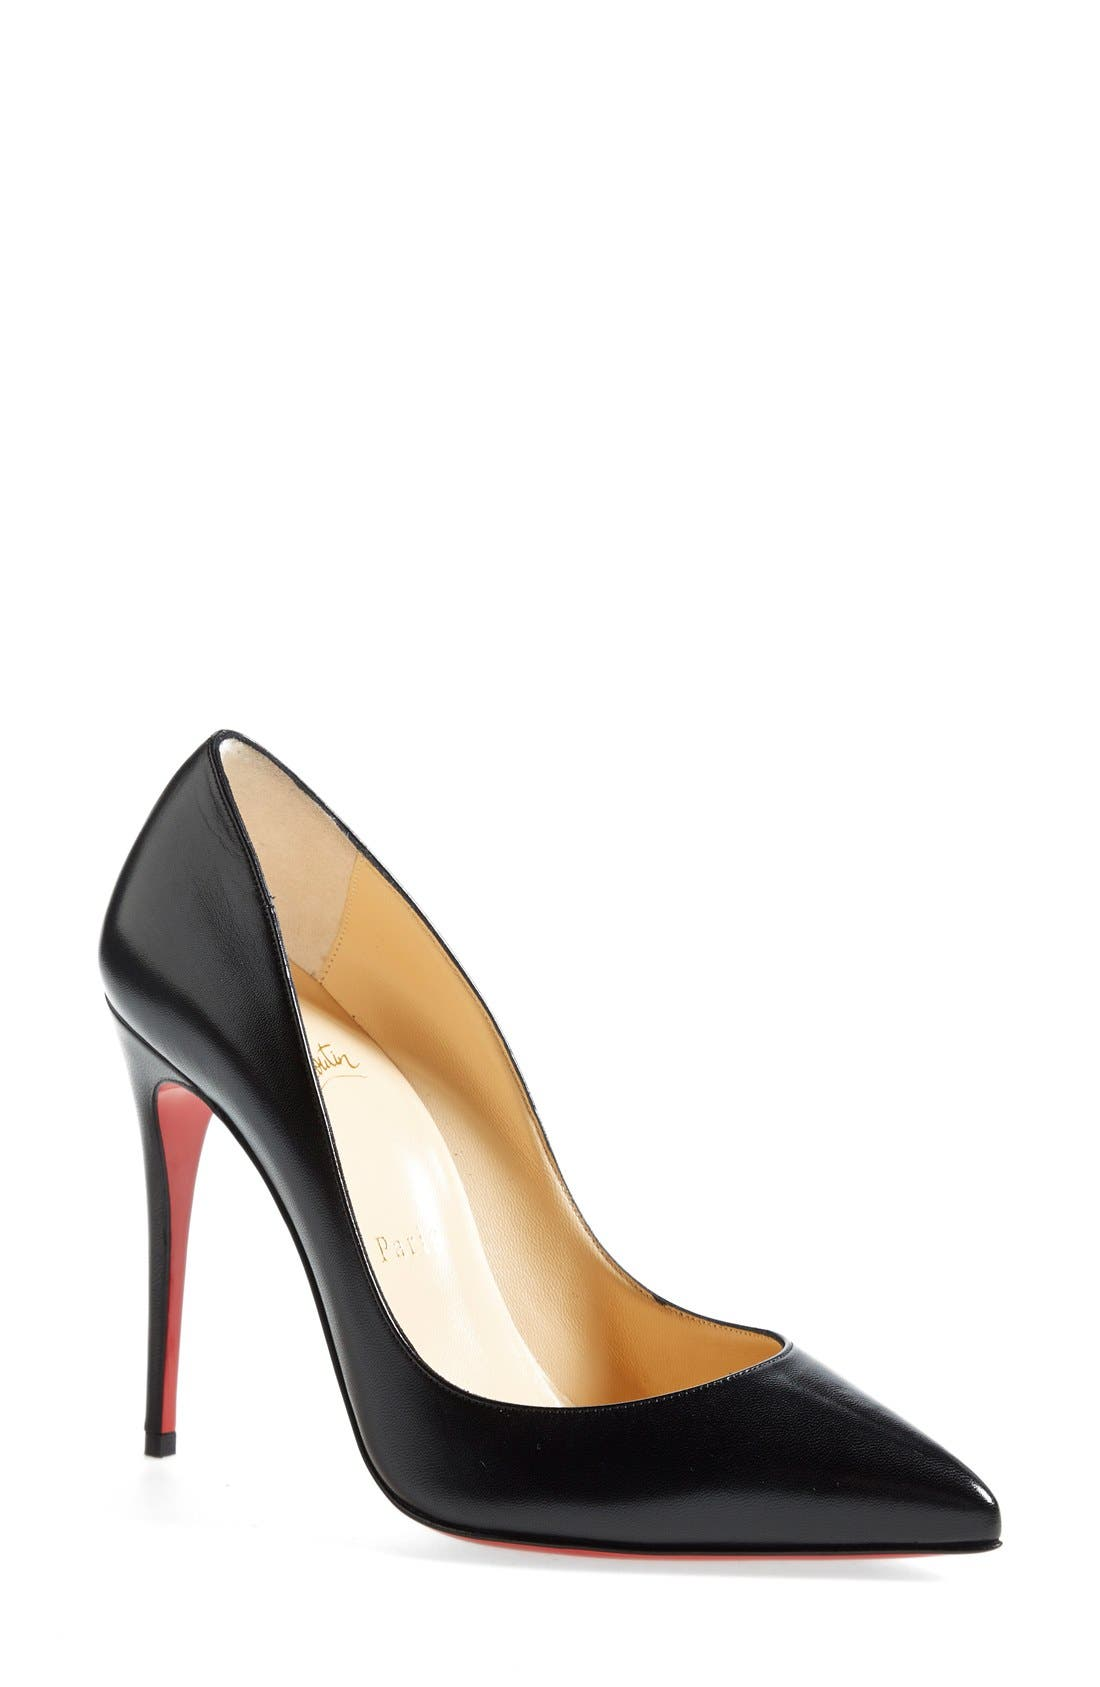 Alternate Image 1 Selected - Christian Louboutin 'Pigalle' Pointy Toe Pump